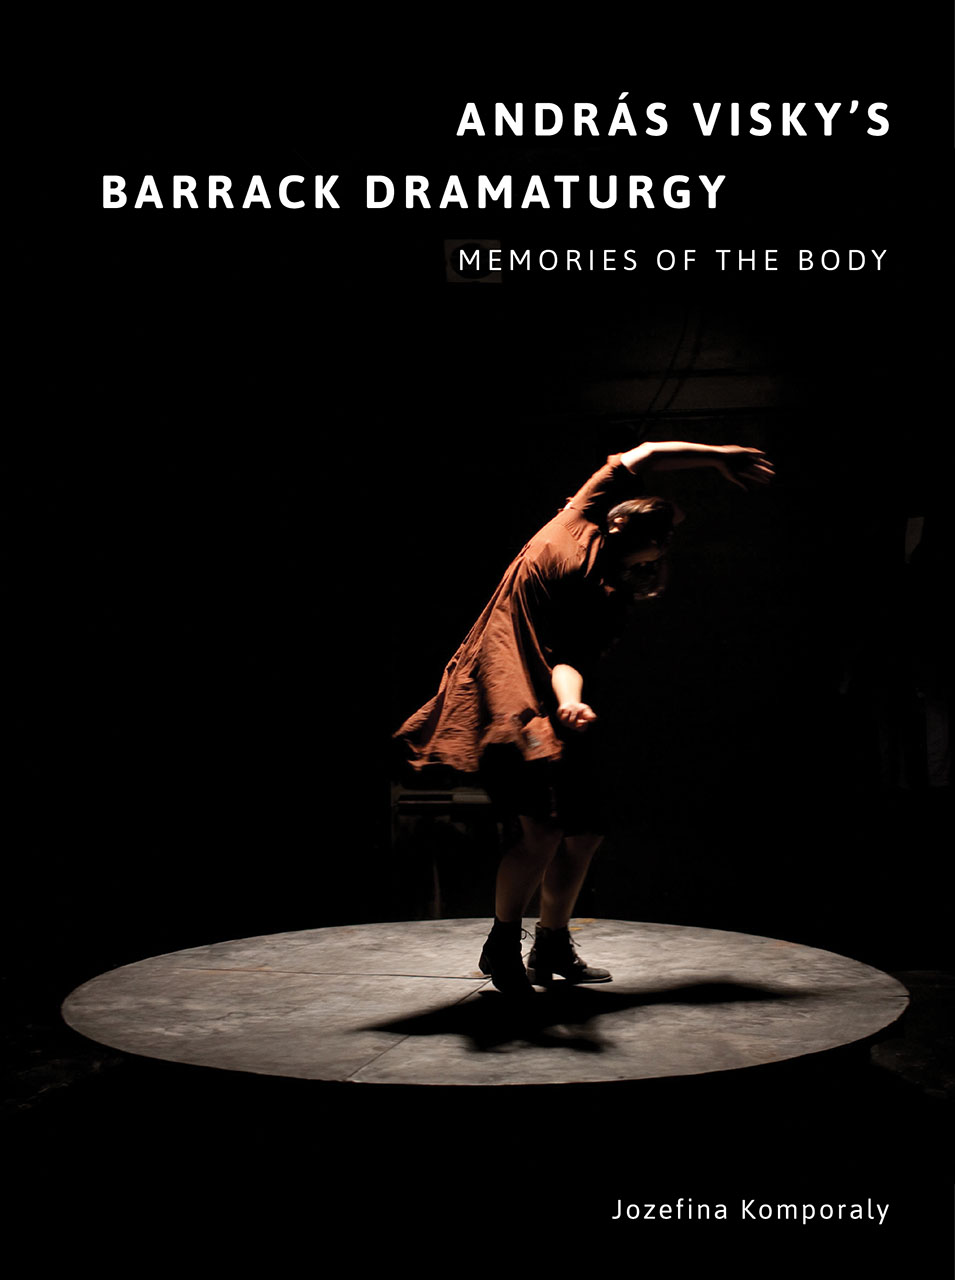 András Visky's Barrack Dramaturgy